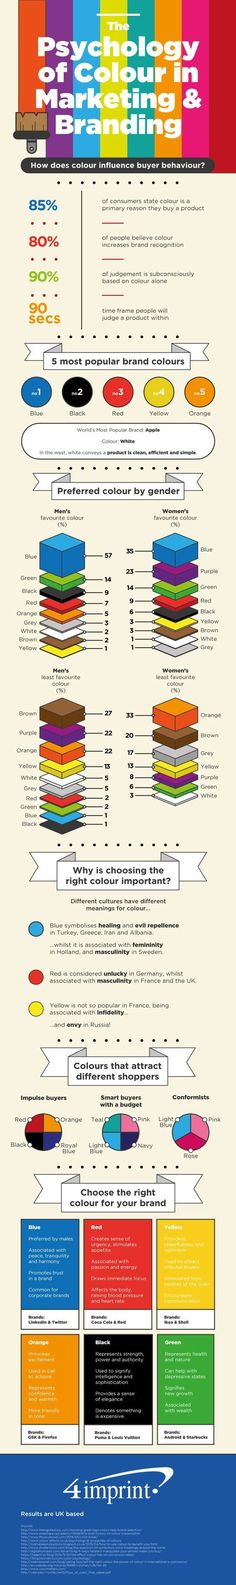 The #Psychology of #Color in #Marketing and Branding | #Infographic